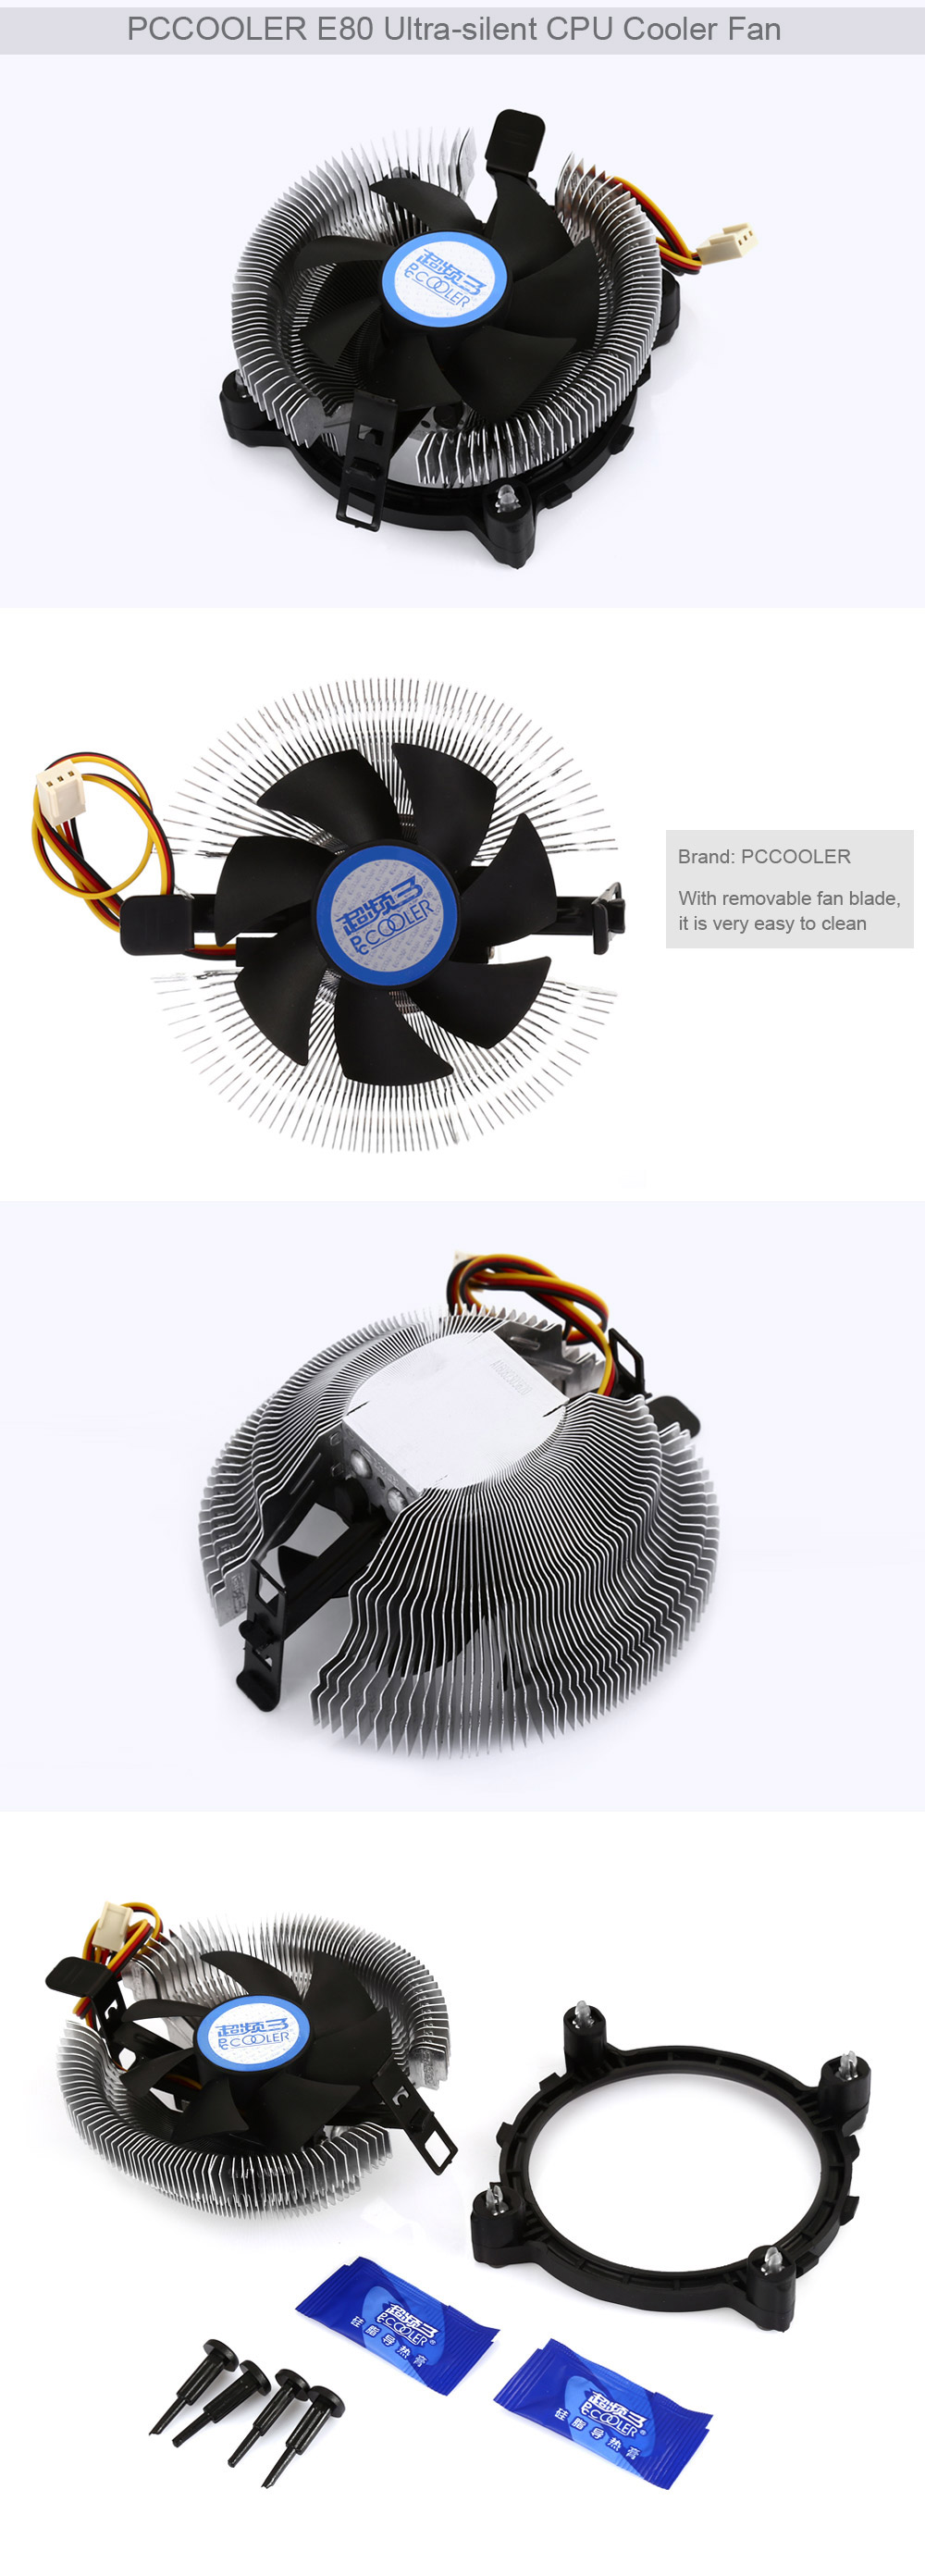 PCCOOLER E80 CPU Cooling Fan Compatible with Intel / AMD